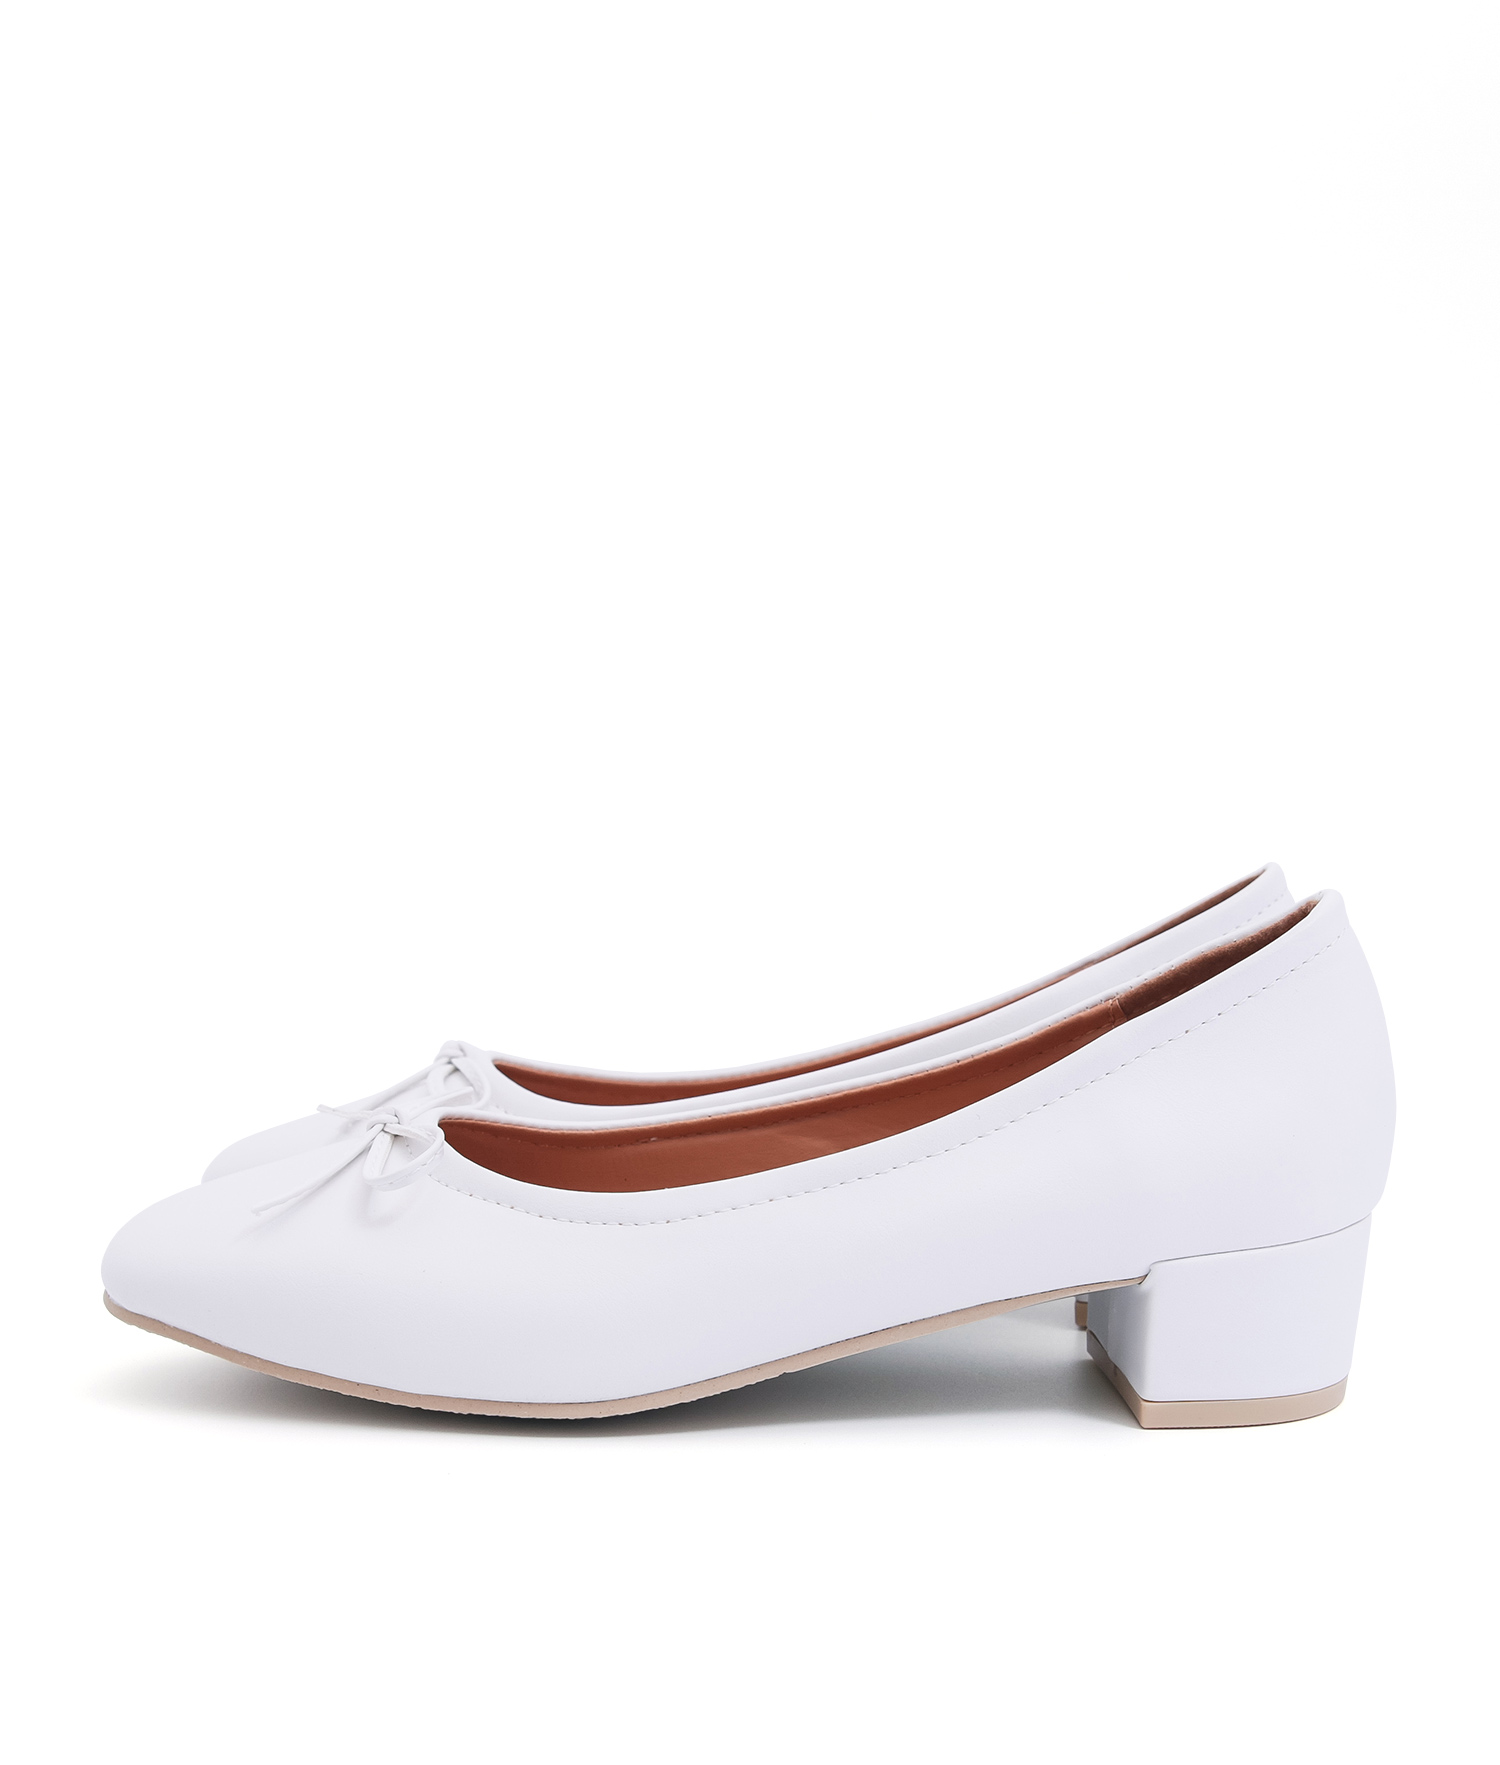 1788d1bf0d AnnaKastle Womens Bow Front Low Block Heel Pumps White